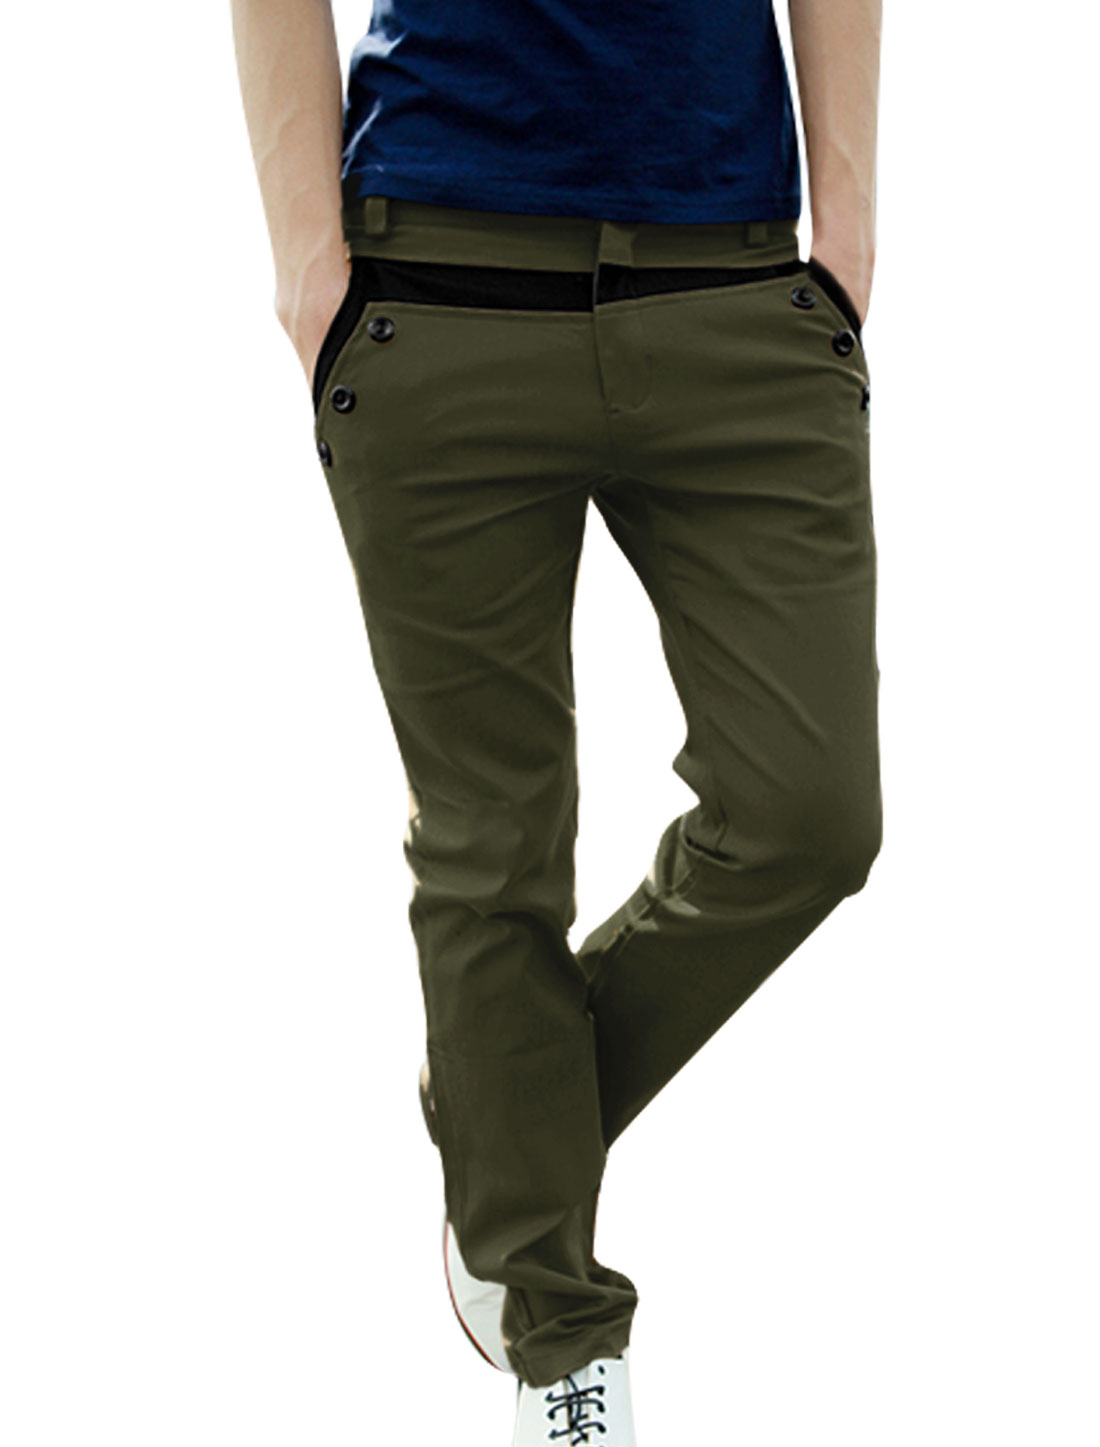 W32 Olive Green Slant Pockets Back Pockets Concealed Zipper Slim Fit Pants